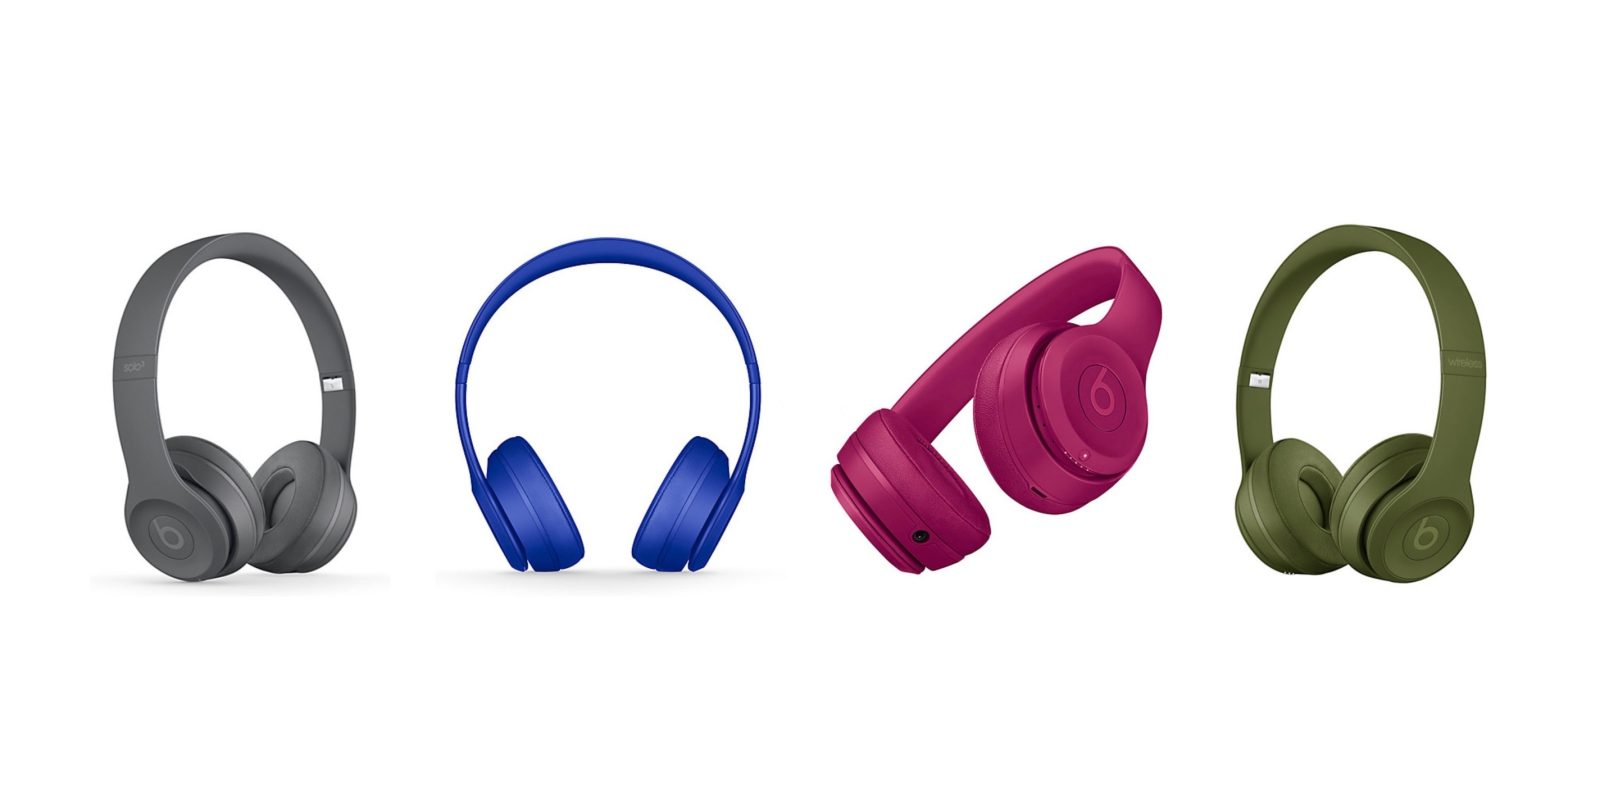 Apple Releases Fresh Colors For Beats Solo3 Wireless Headphones U 9to5mac